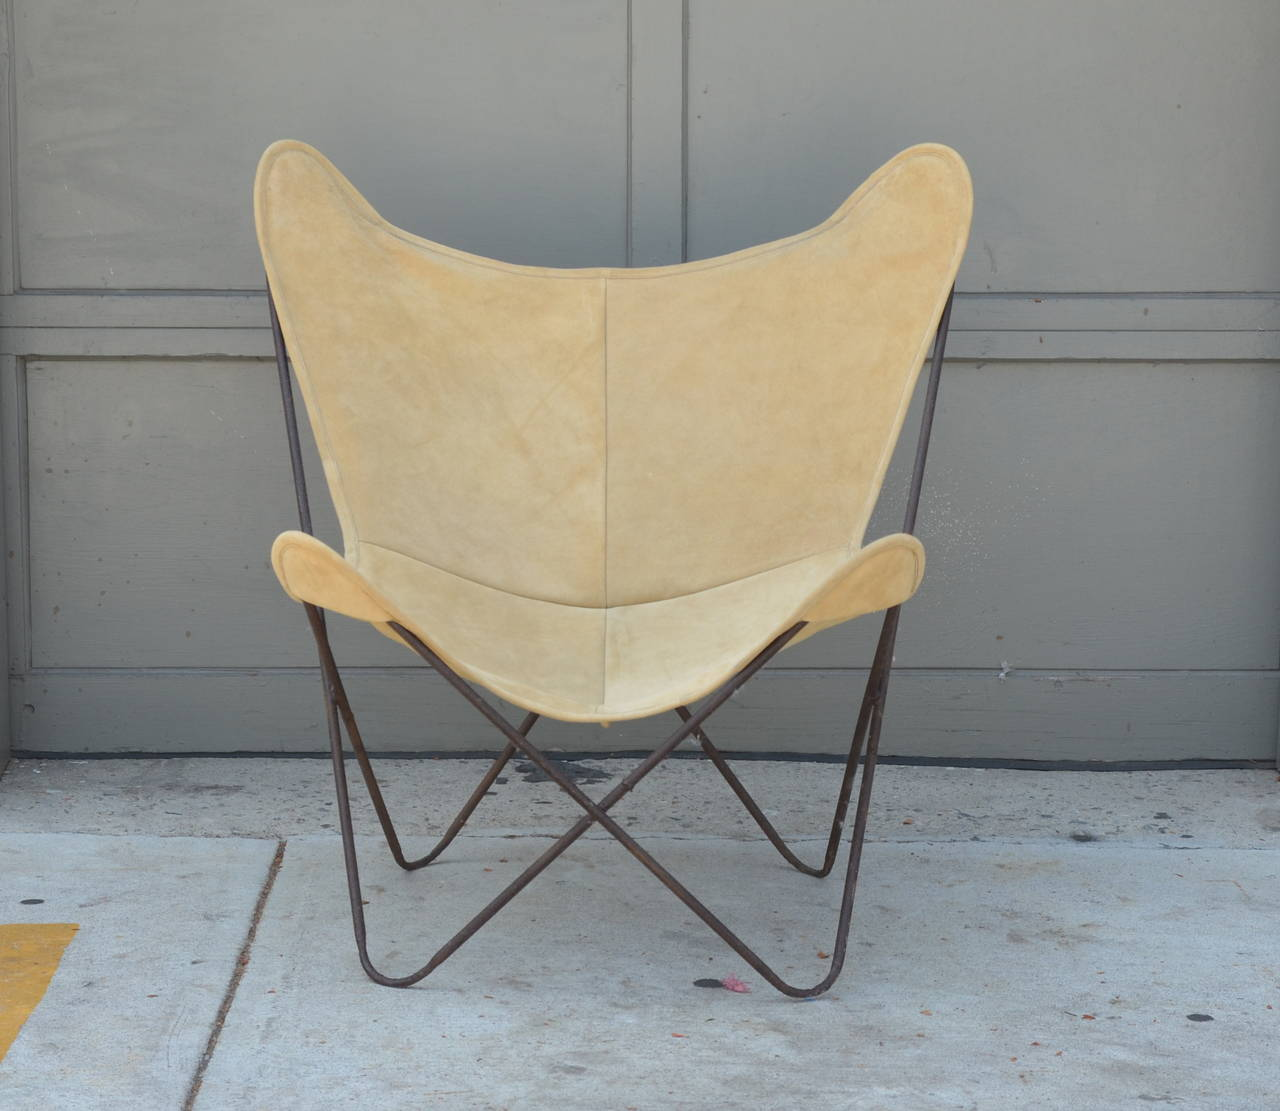 Pair Of Original Vintage Hardoy Butterfly Chairs In Suede